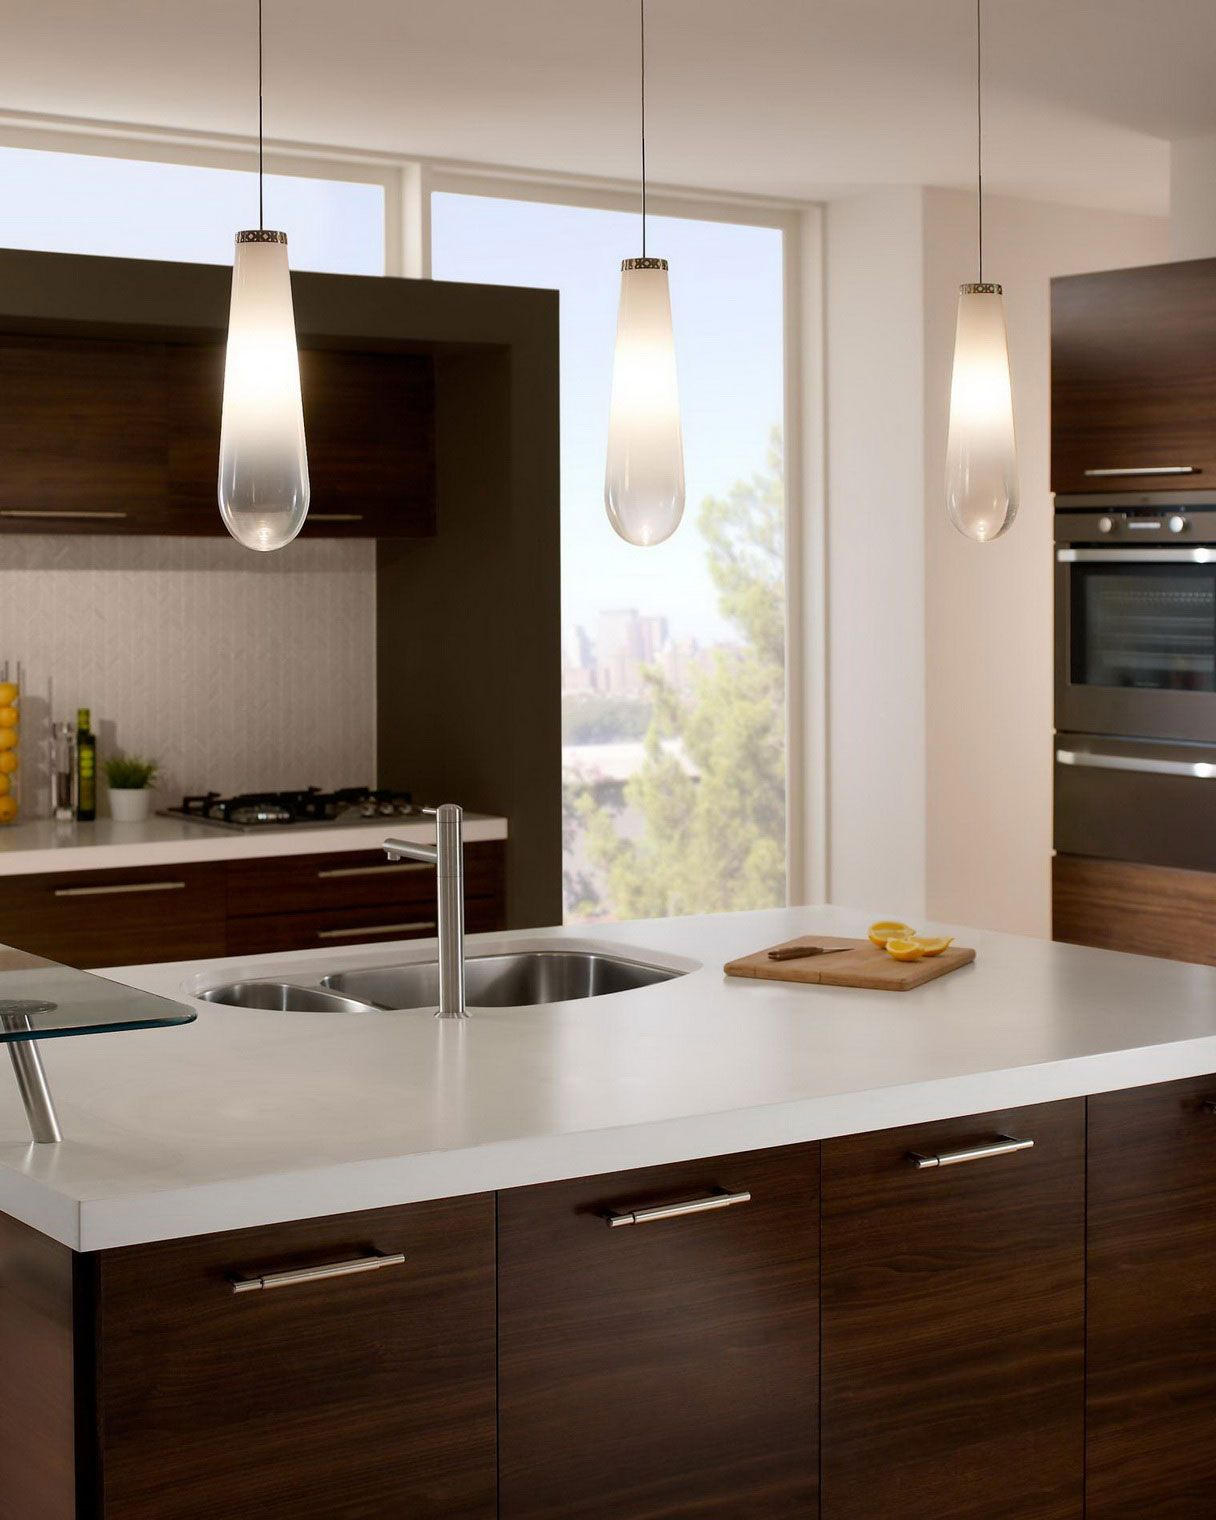 Sleek kitchen designing ideas with laminate teak kitchen island